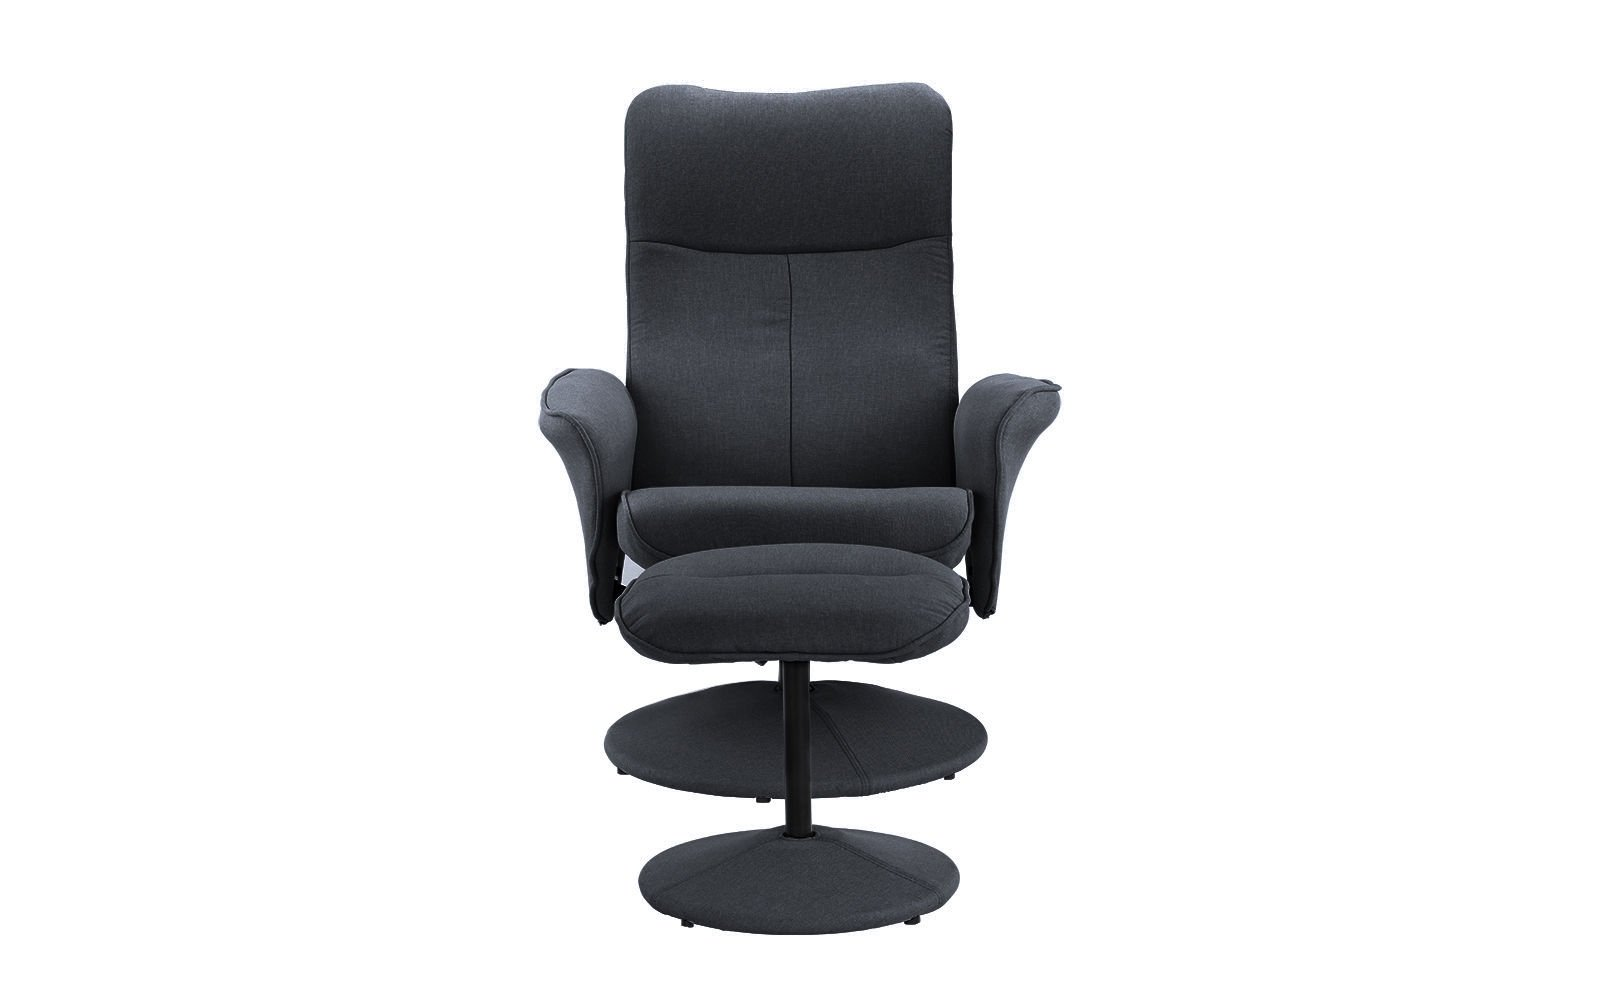 Details About Recliner Chair With Footstool Gaming And Office Dark Grey